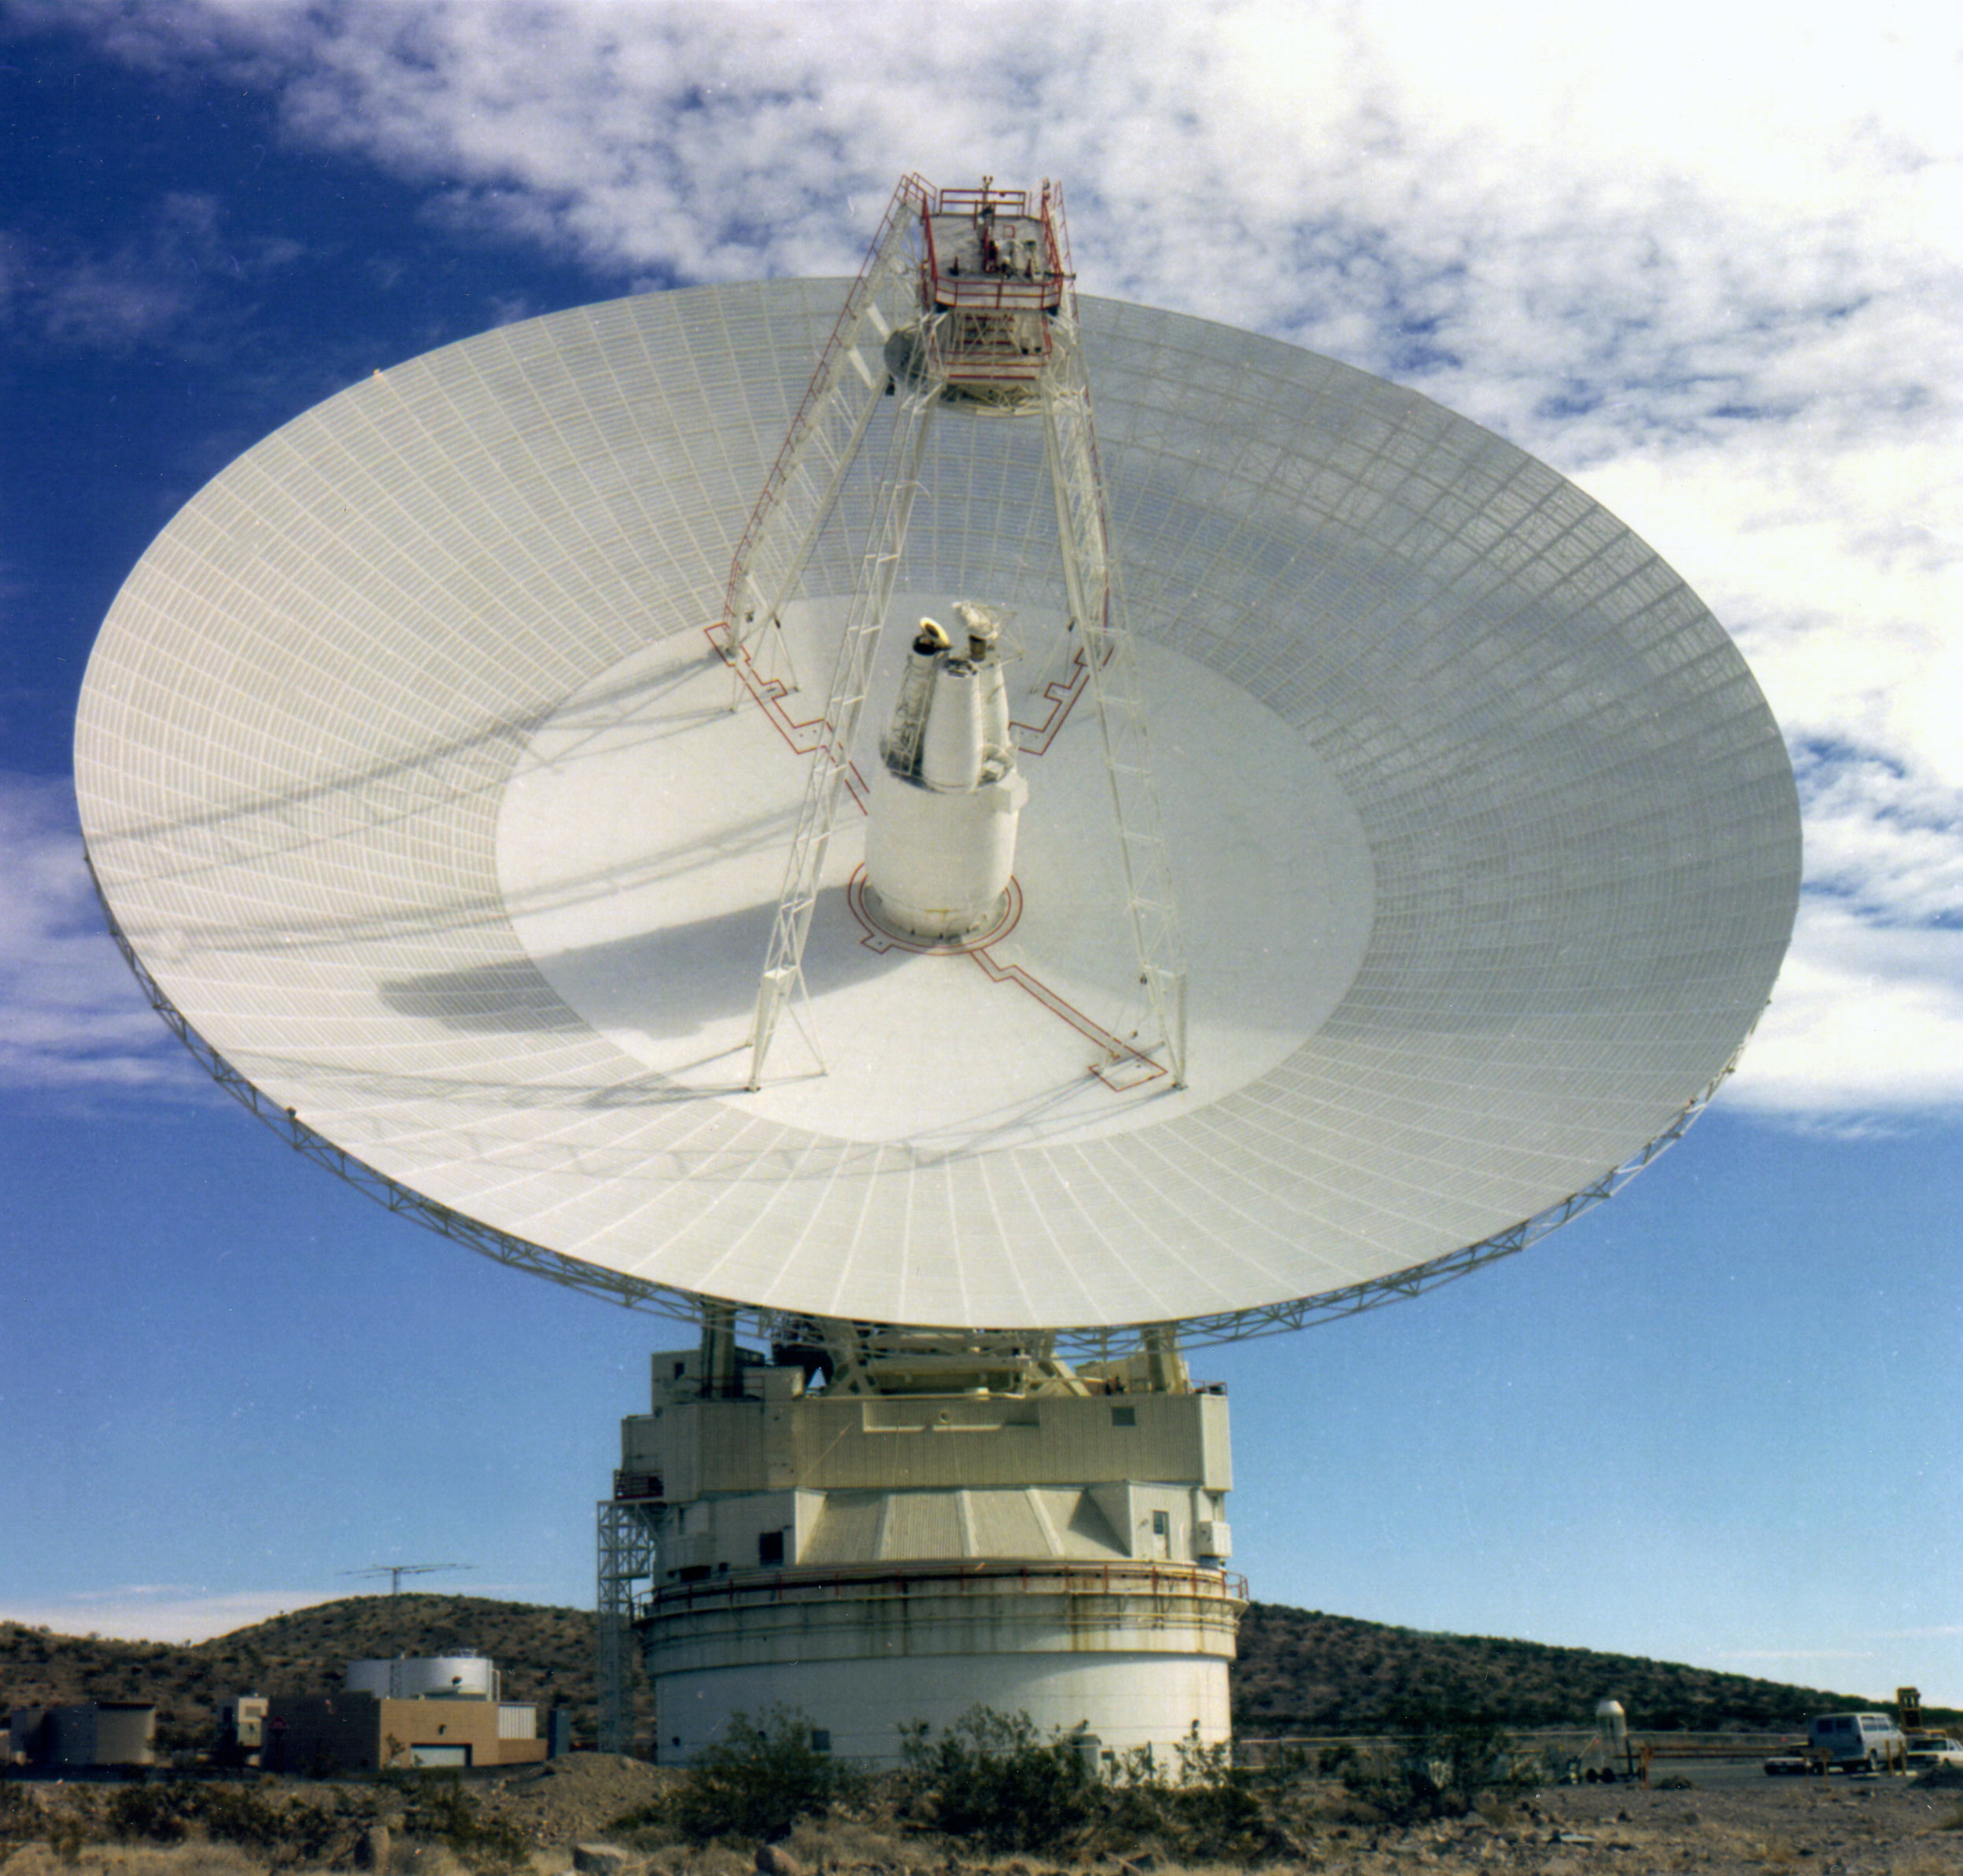 nasa satellite dish - photo #34